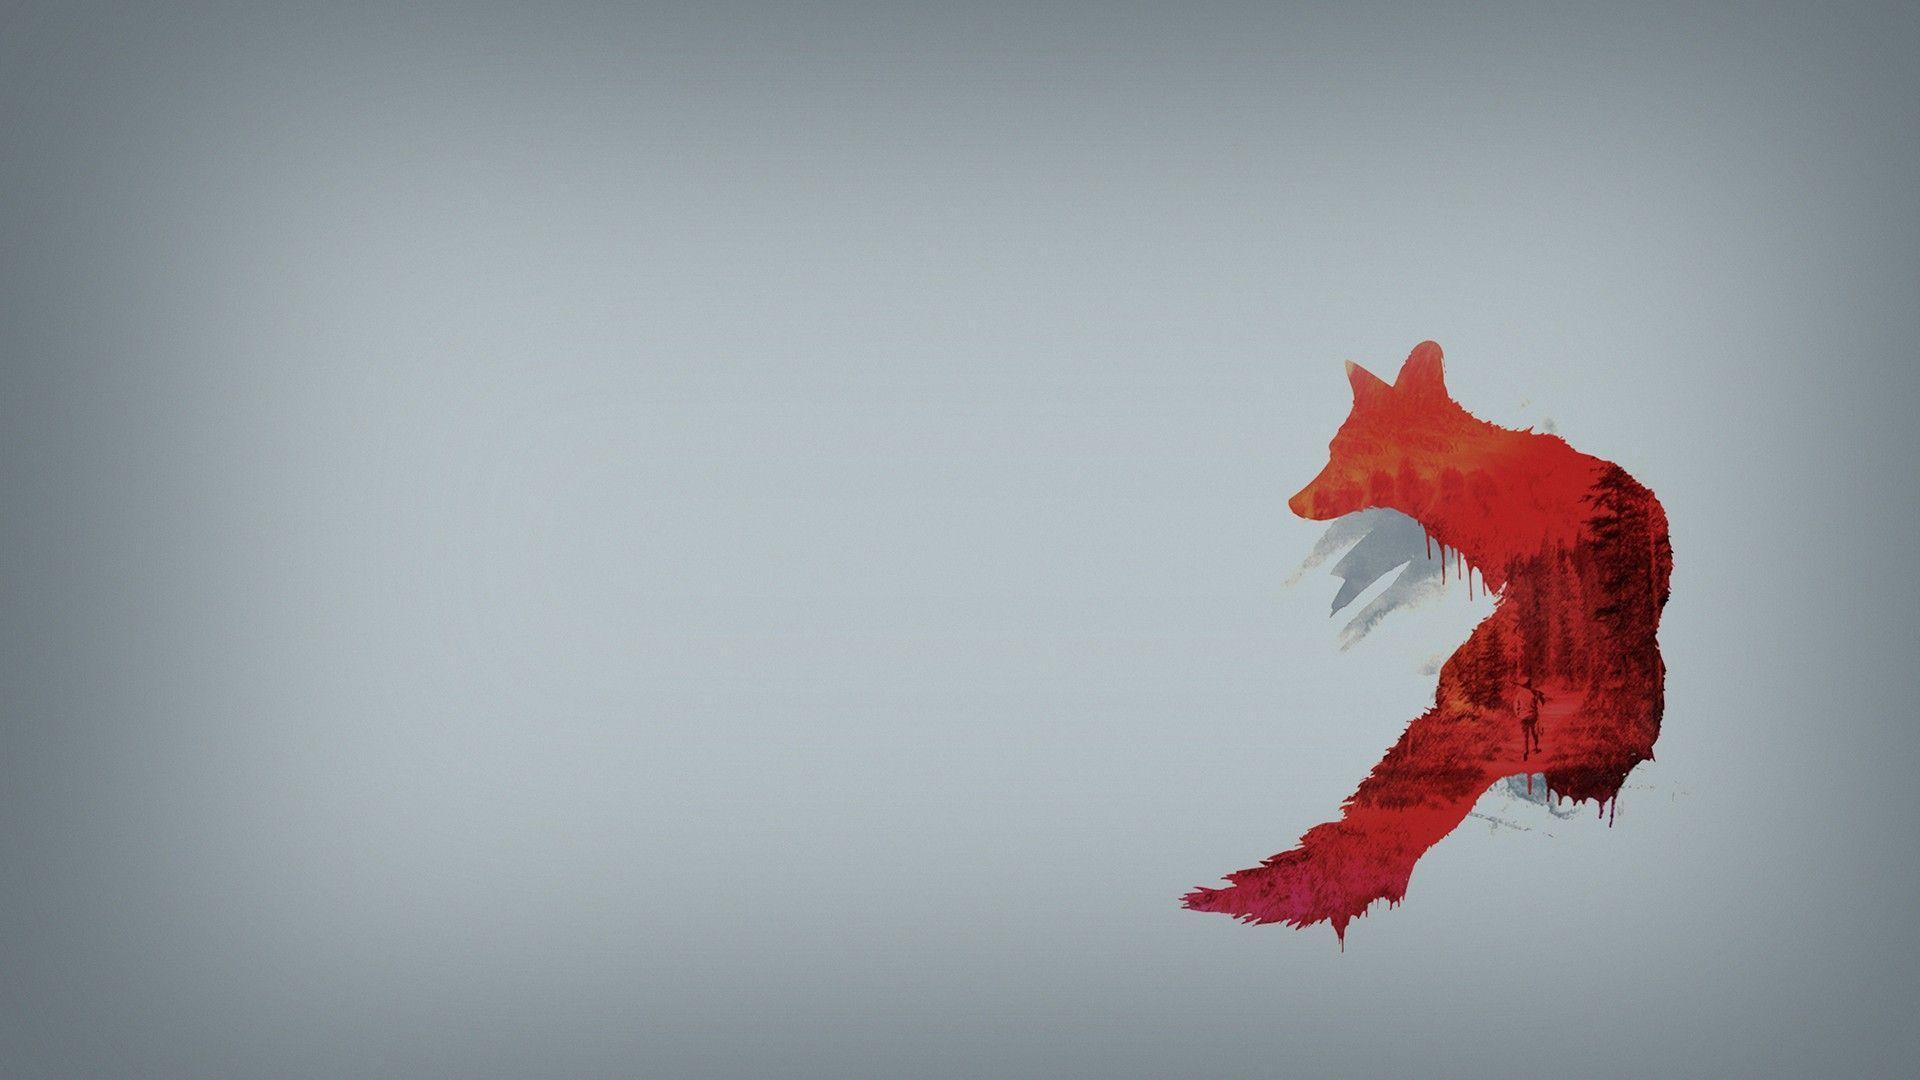 Red Fox 1080p HD Wallpapers